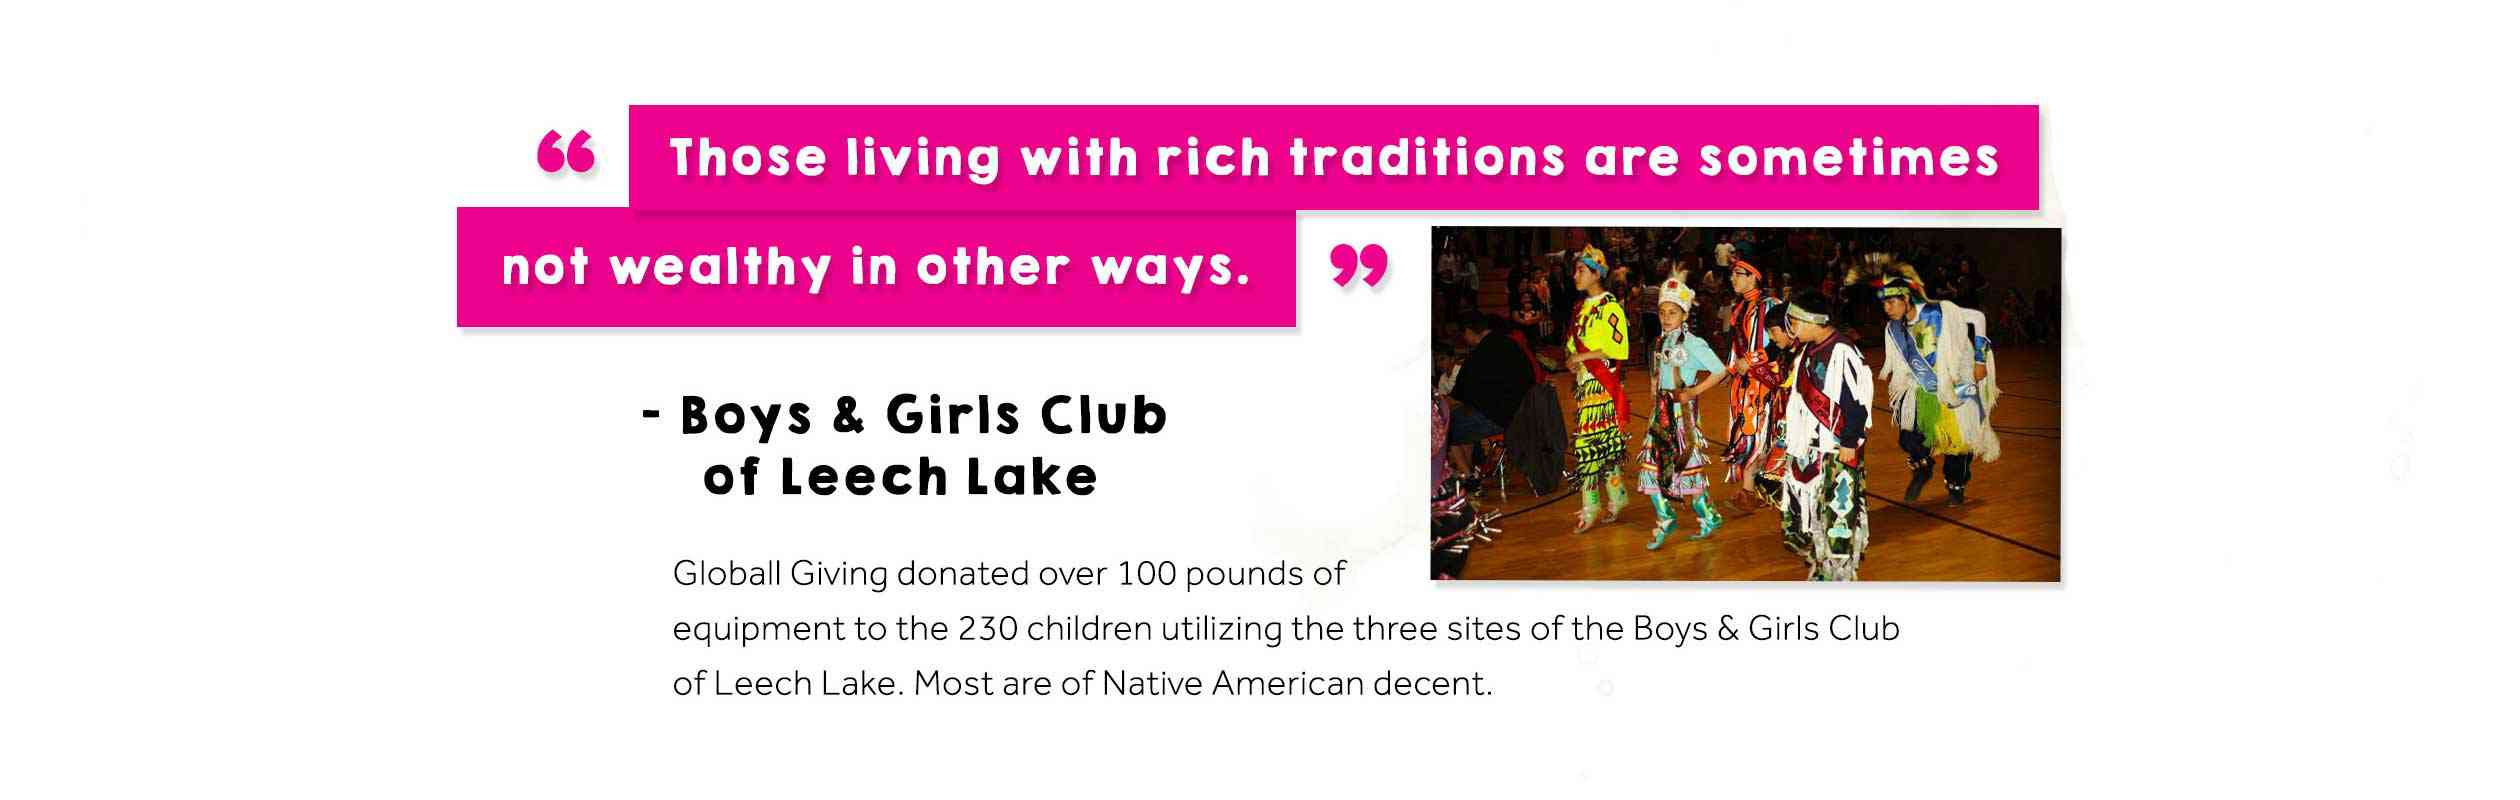 Boys & Girls Club of Leech Lake